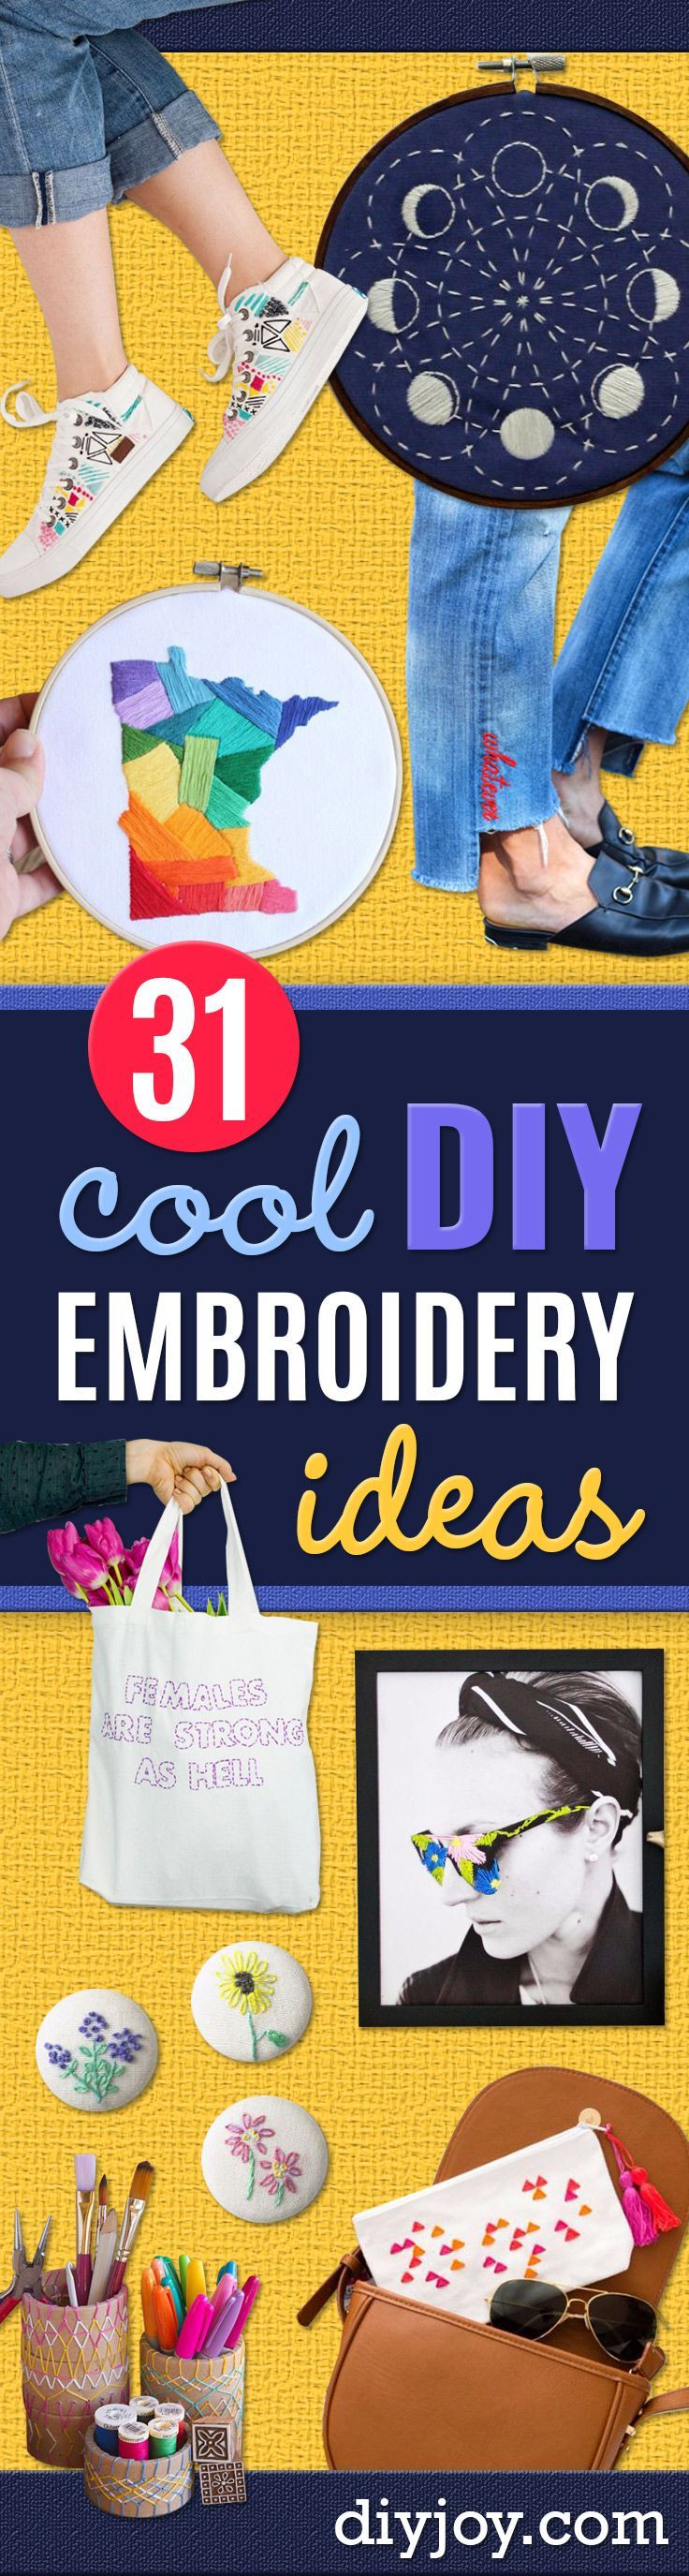 Free Embroidery Patterns - Best Embroidery Projects and Step by Step DIY Tutorials for Making Home Decor, Wall Art, Pillows and Creative Handmade Sewing Gifts - Machine Ideas and Hand Sewn Ideas for Beginners - Quotes, Modern Art, Flowers, Christmas Decor, Kitchen Towels and Easy Applique Designs http://diyjoy.com/free-embroidery-patterns